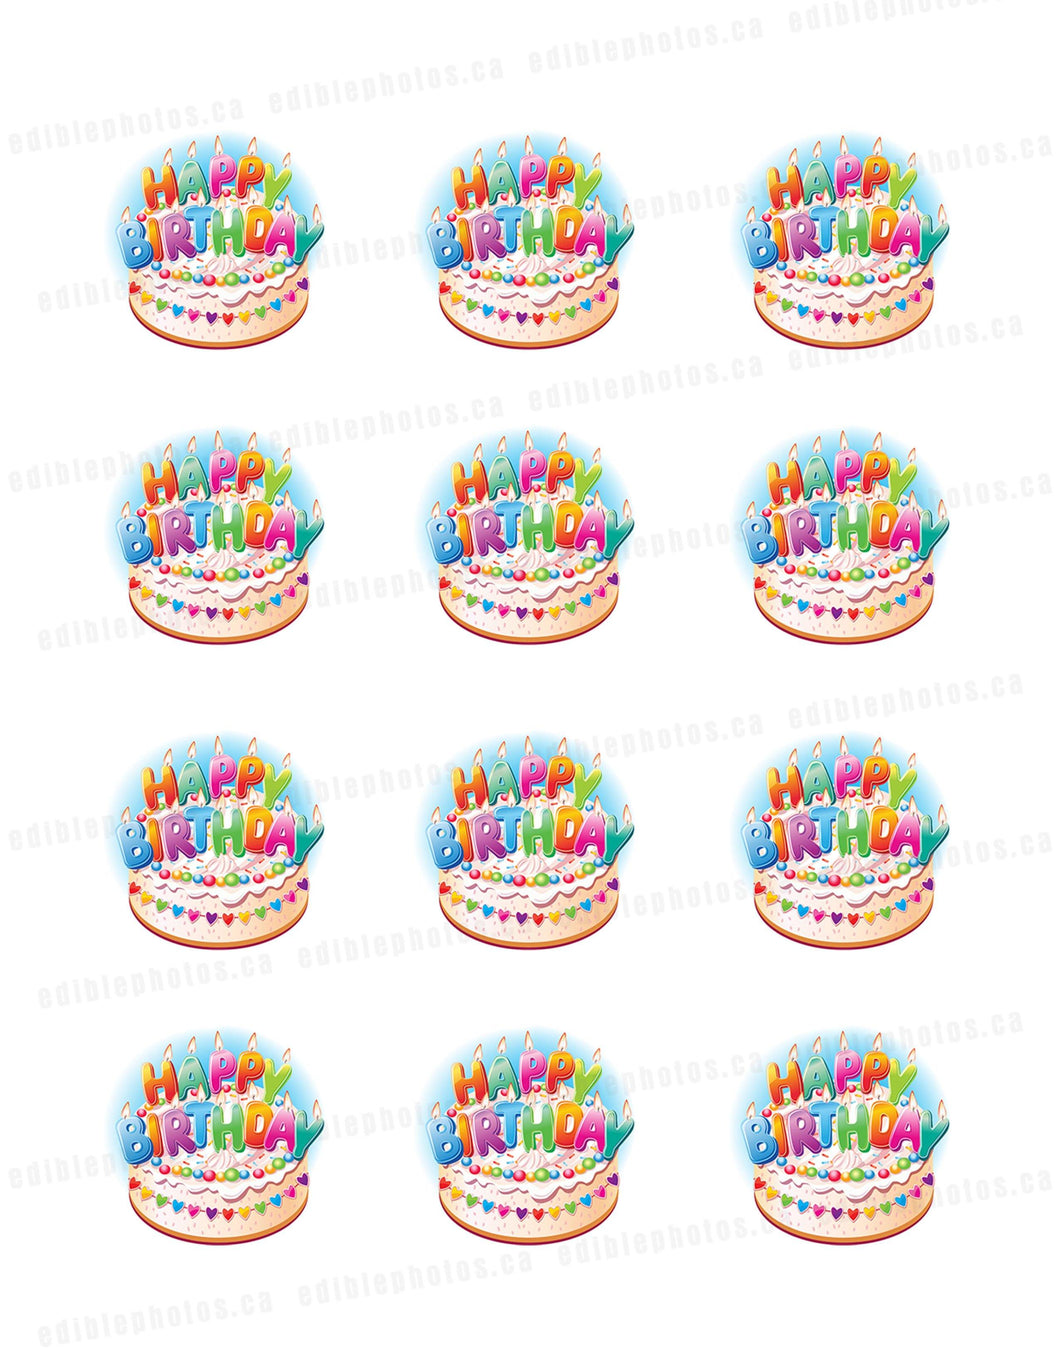 Happy Birthday Cake & Candles Edible Cupcake or Cookie Photos (12)